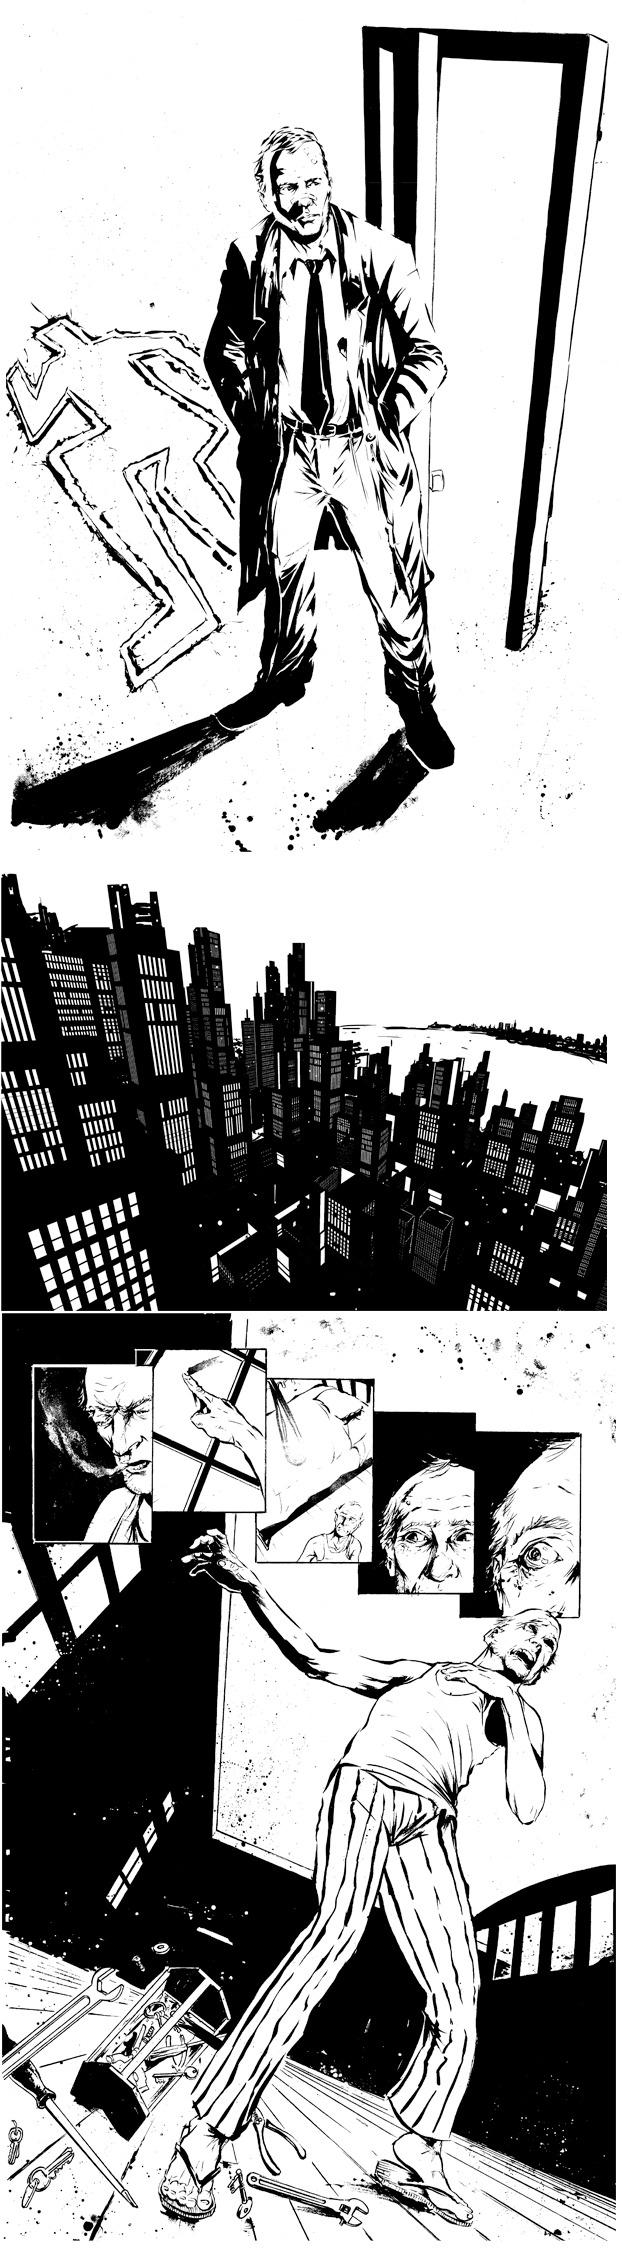 All 42 pages of The Locksmith issue #1 INKS ONLY! A kickstarter exclusive.